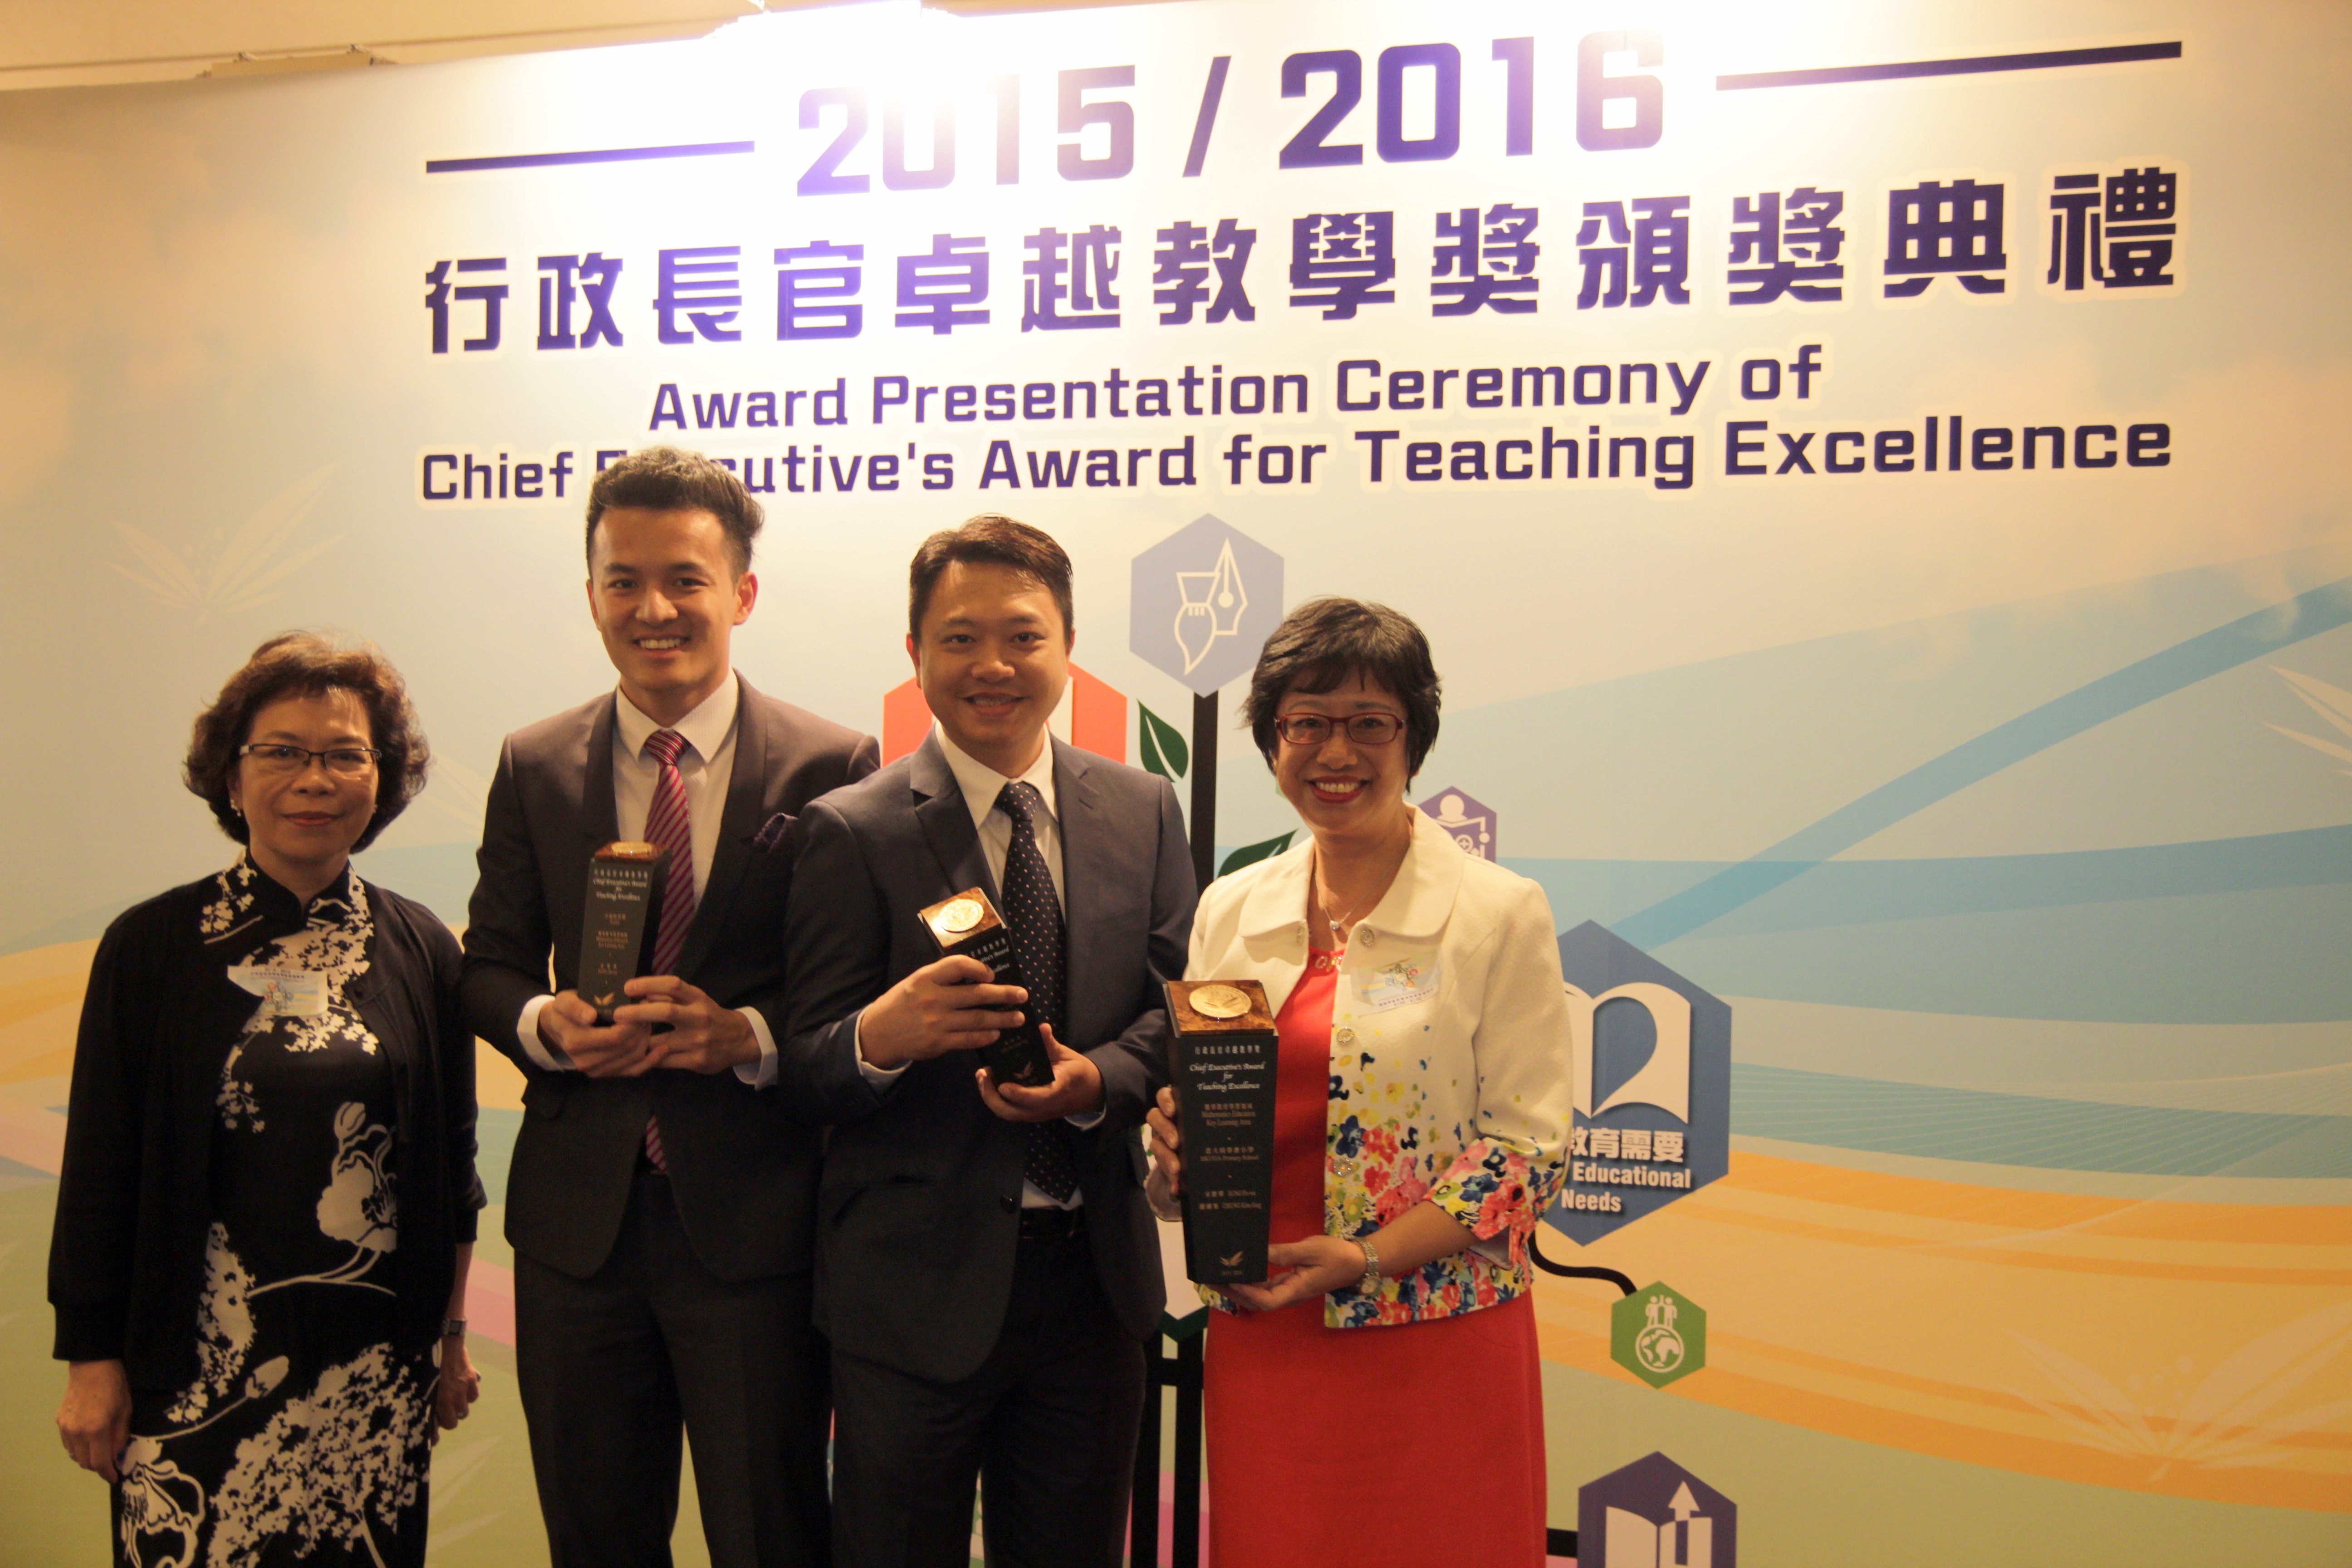 Chief Executive's Award for Teaching Excellence 2015/2016